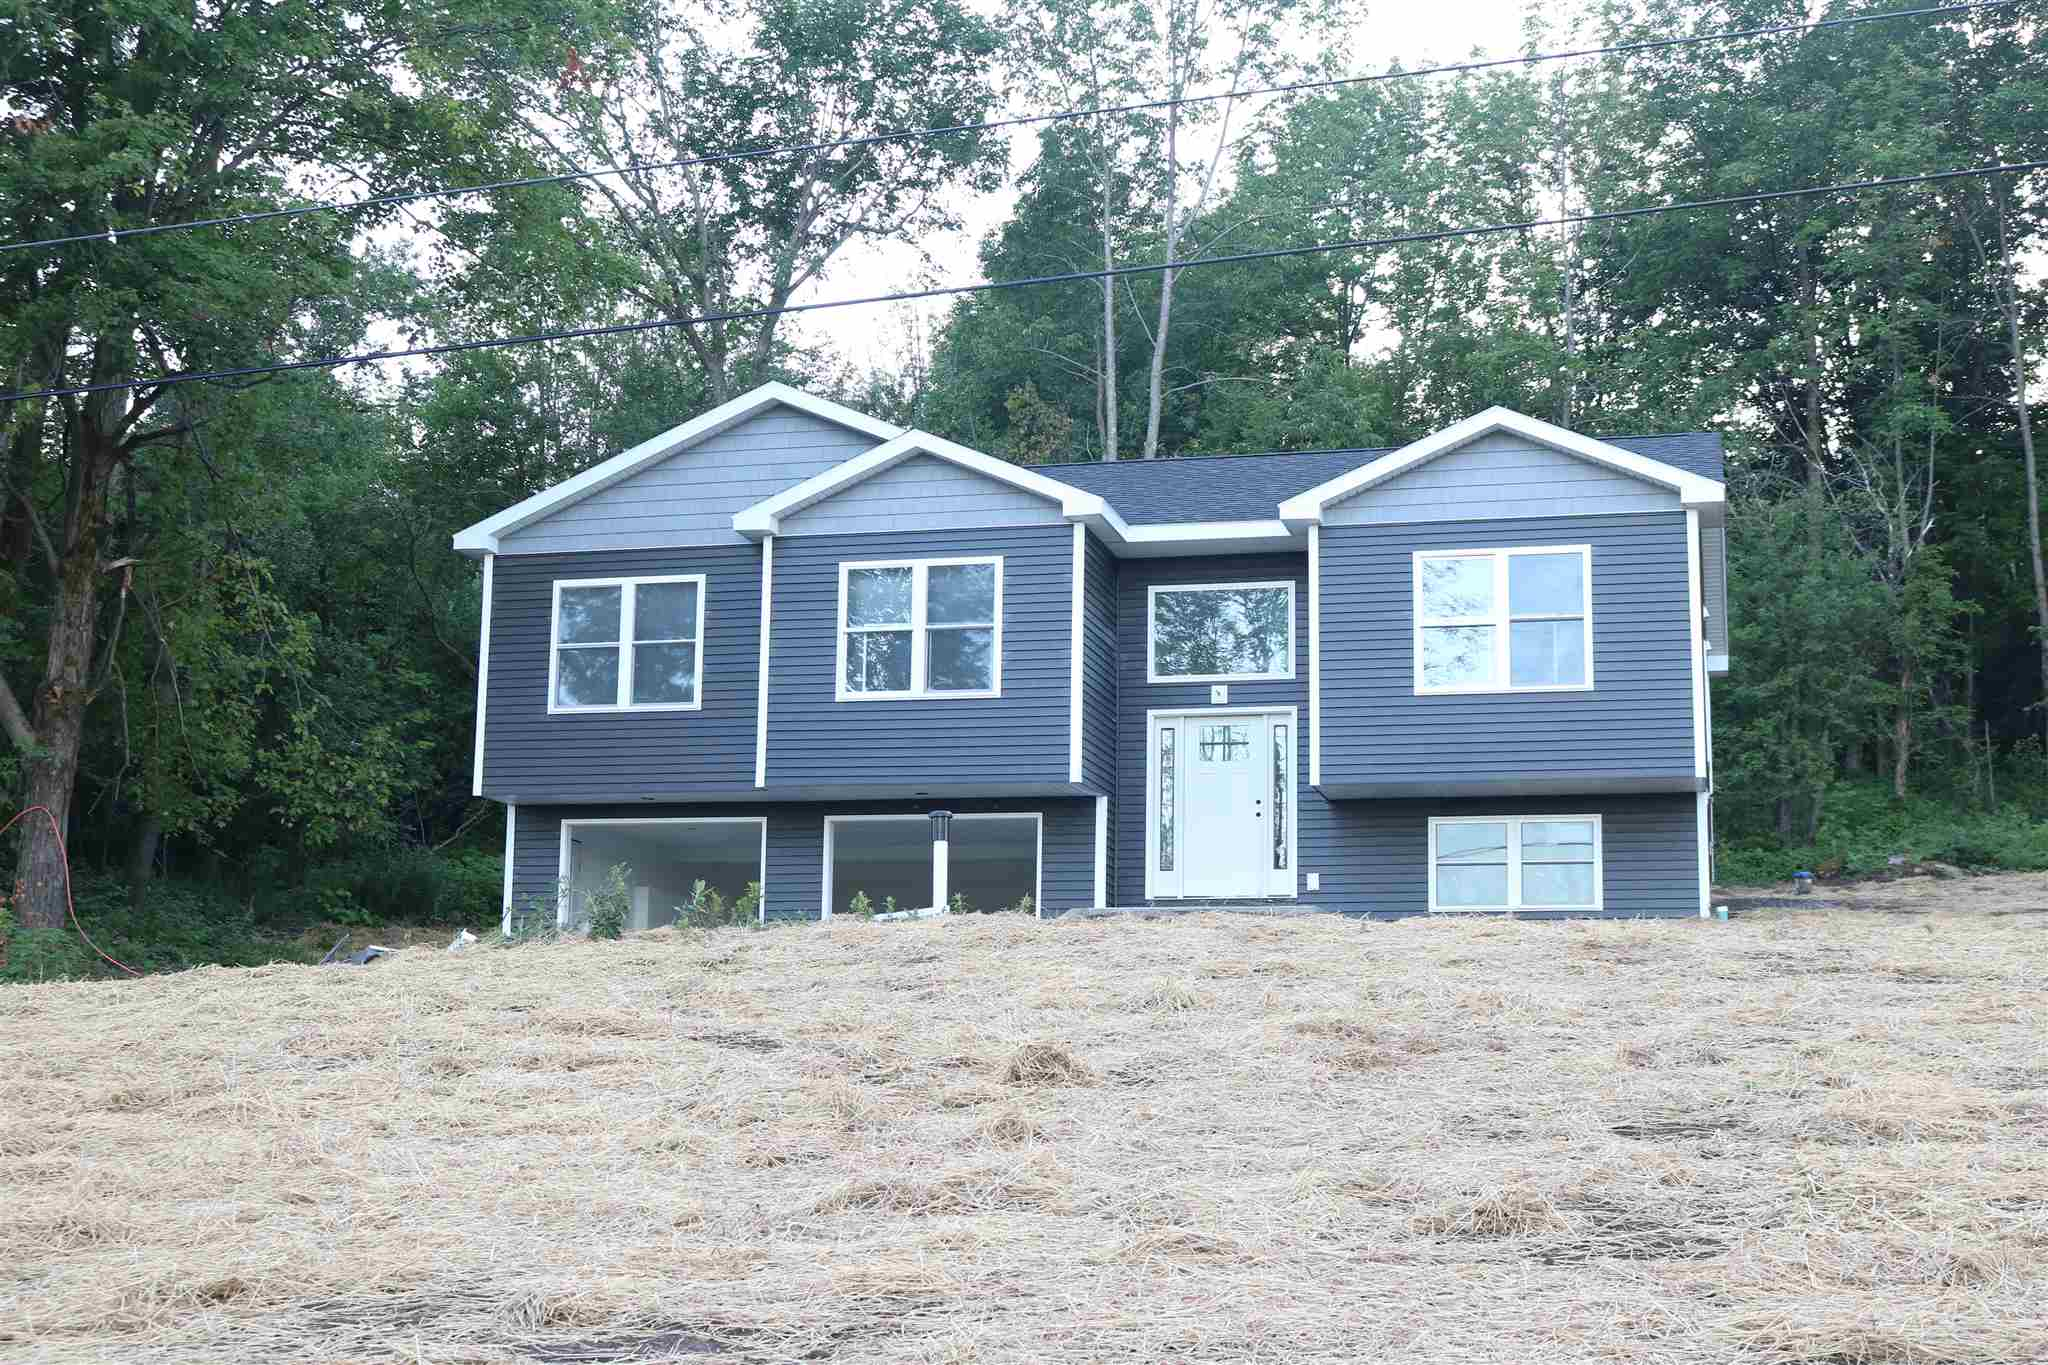 3181 Kittell Road Sheldon VT 05483